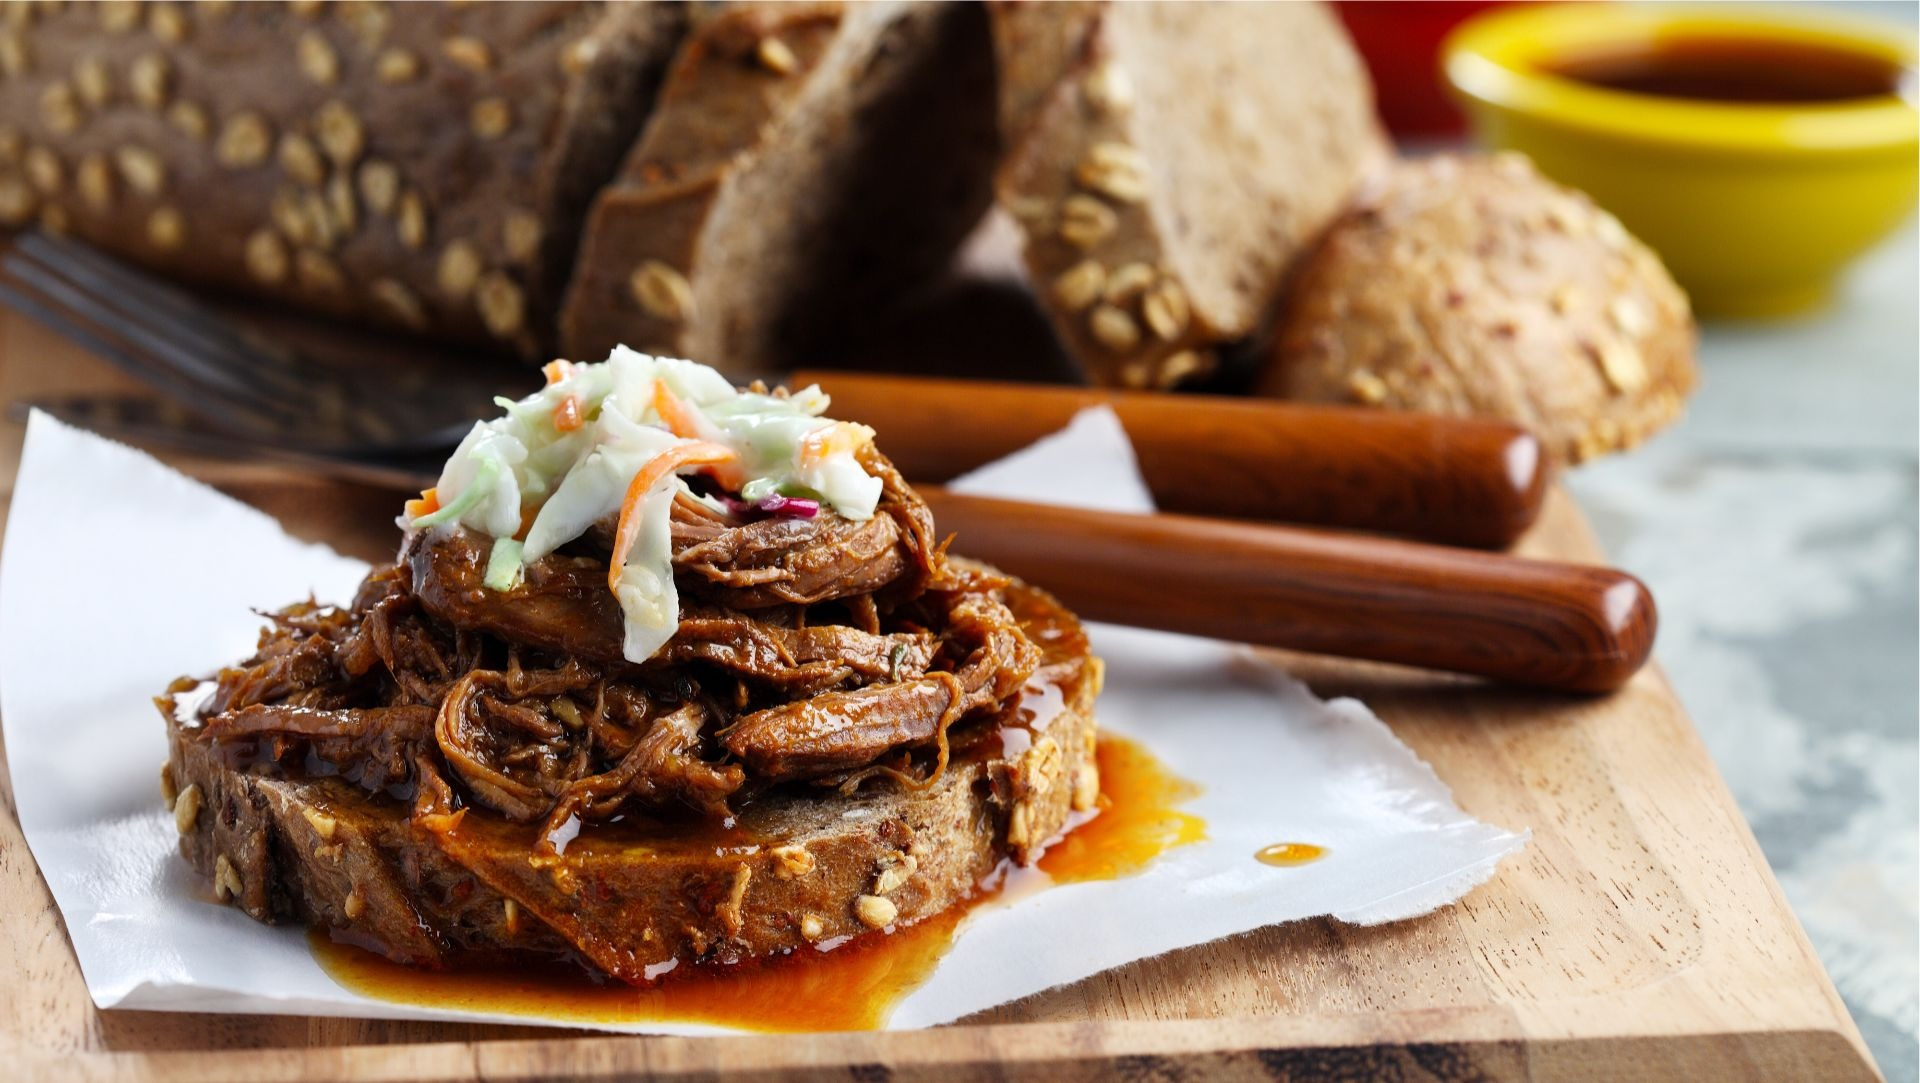 Shredded beef brisket on slice of multigrain bread topped with coleslaw